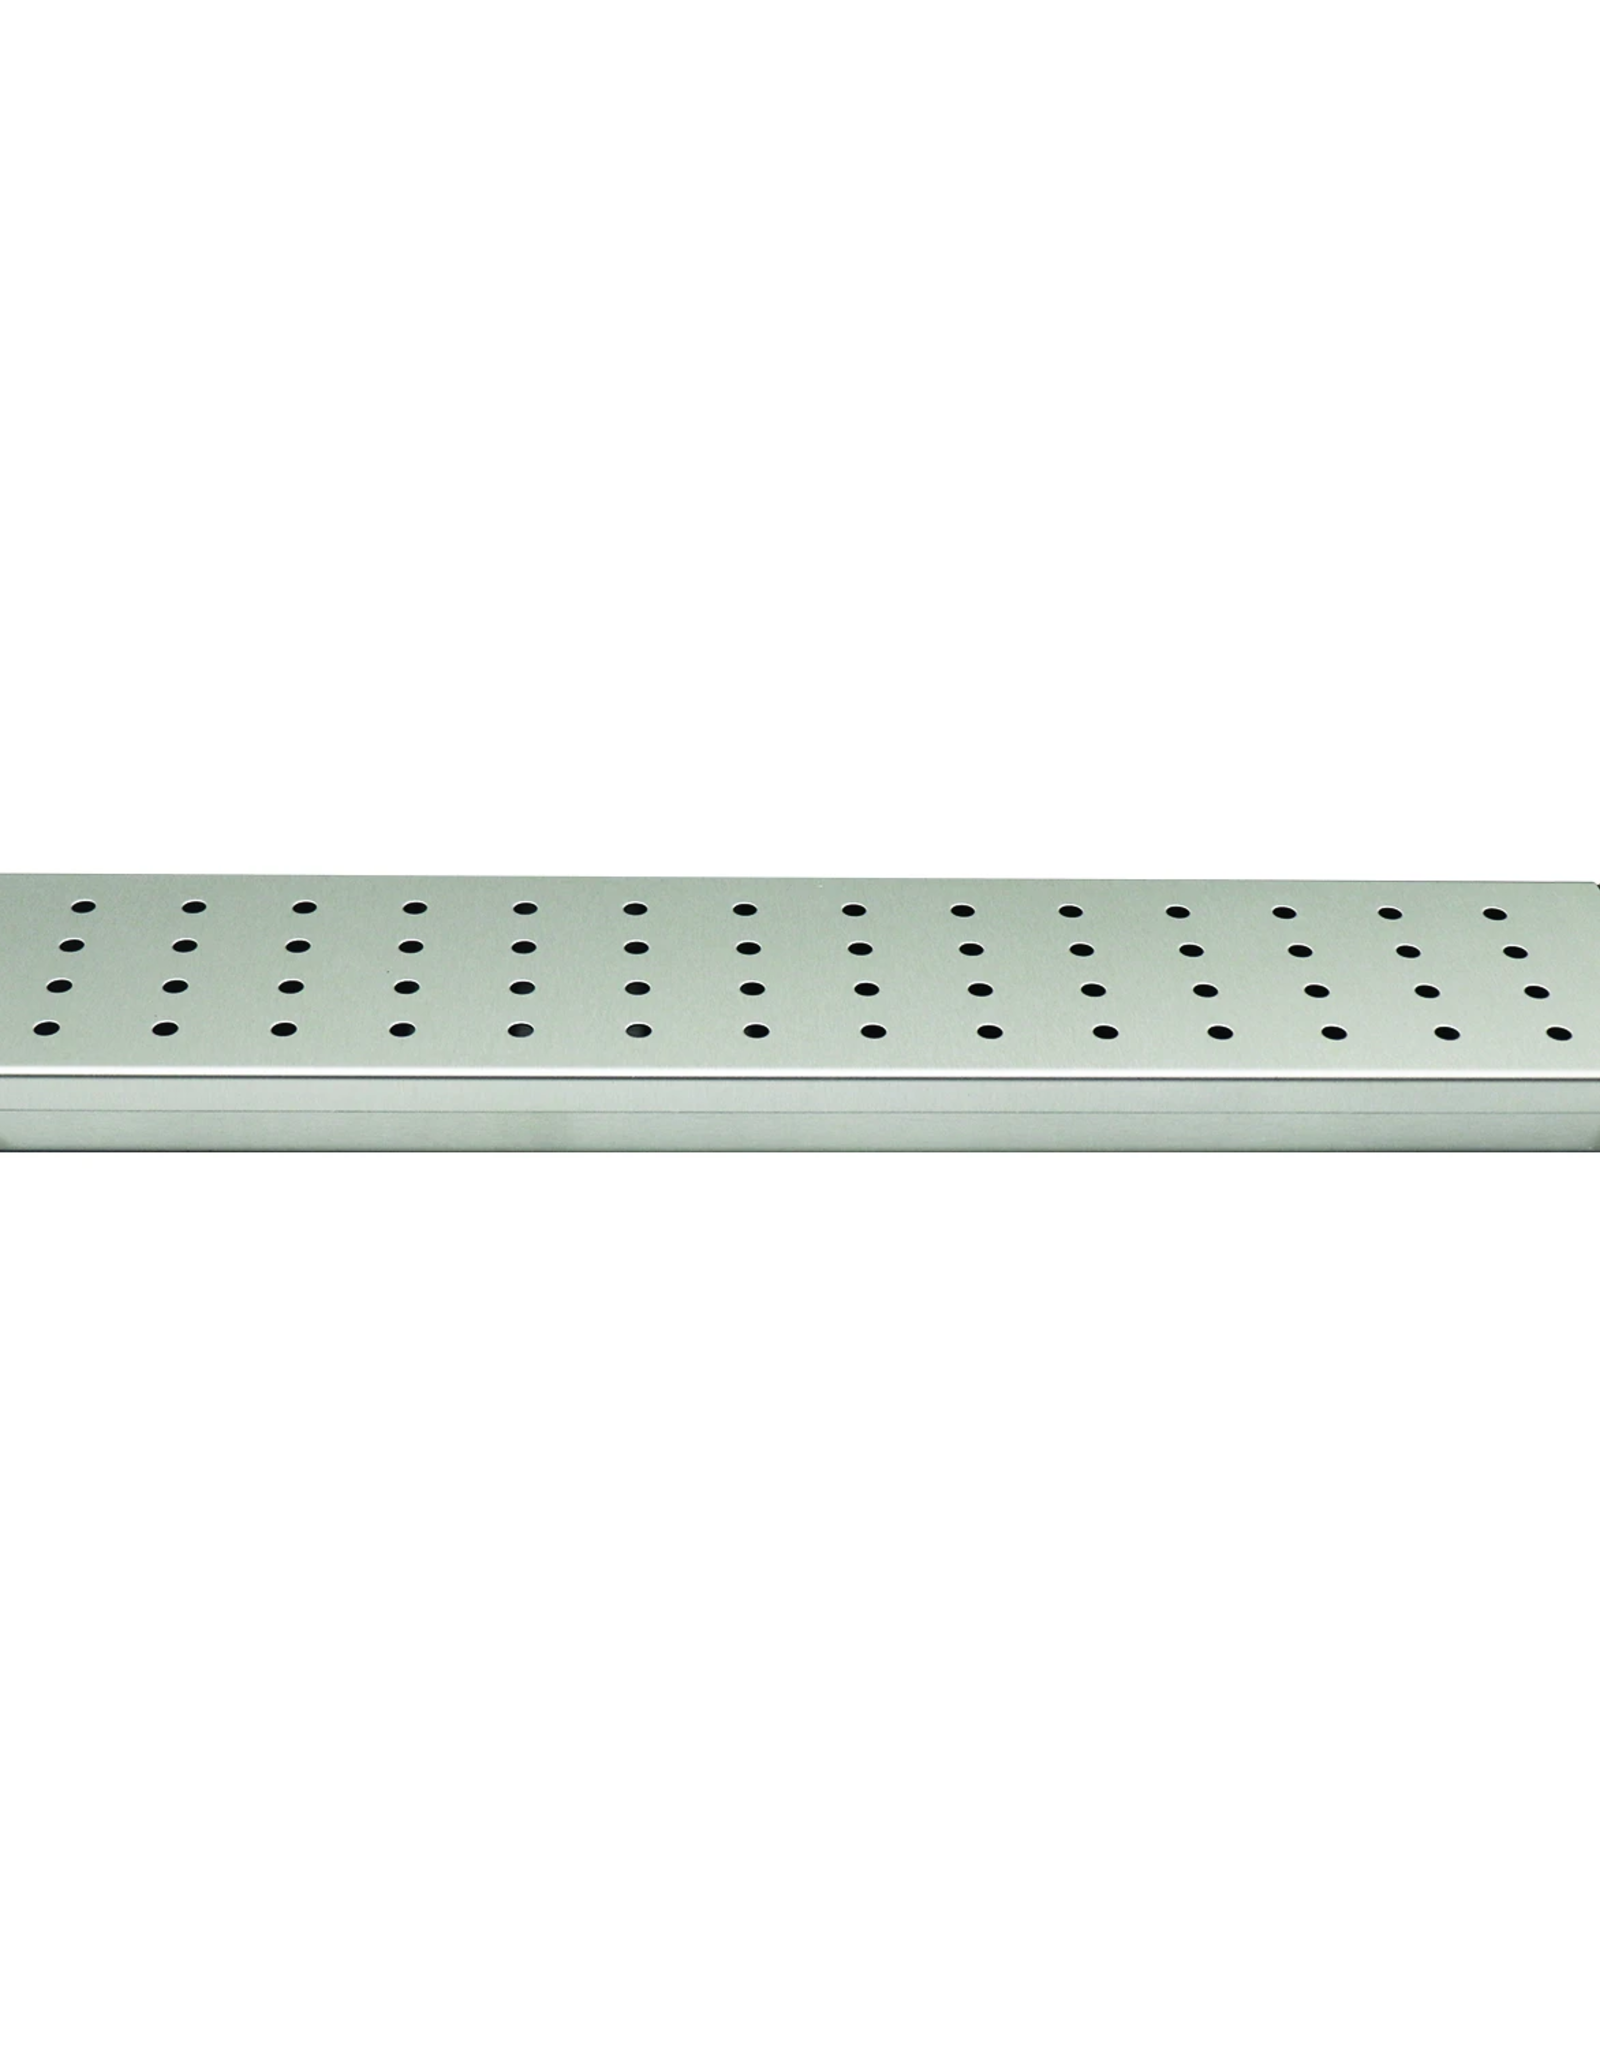 Renaissance Cooking Systems Renaissance Cooking Systems The Stainless Steel Smoker Tray for the Premier Series Grills - RST2632